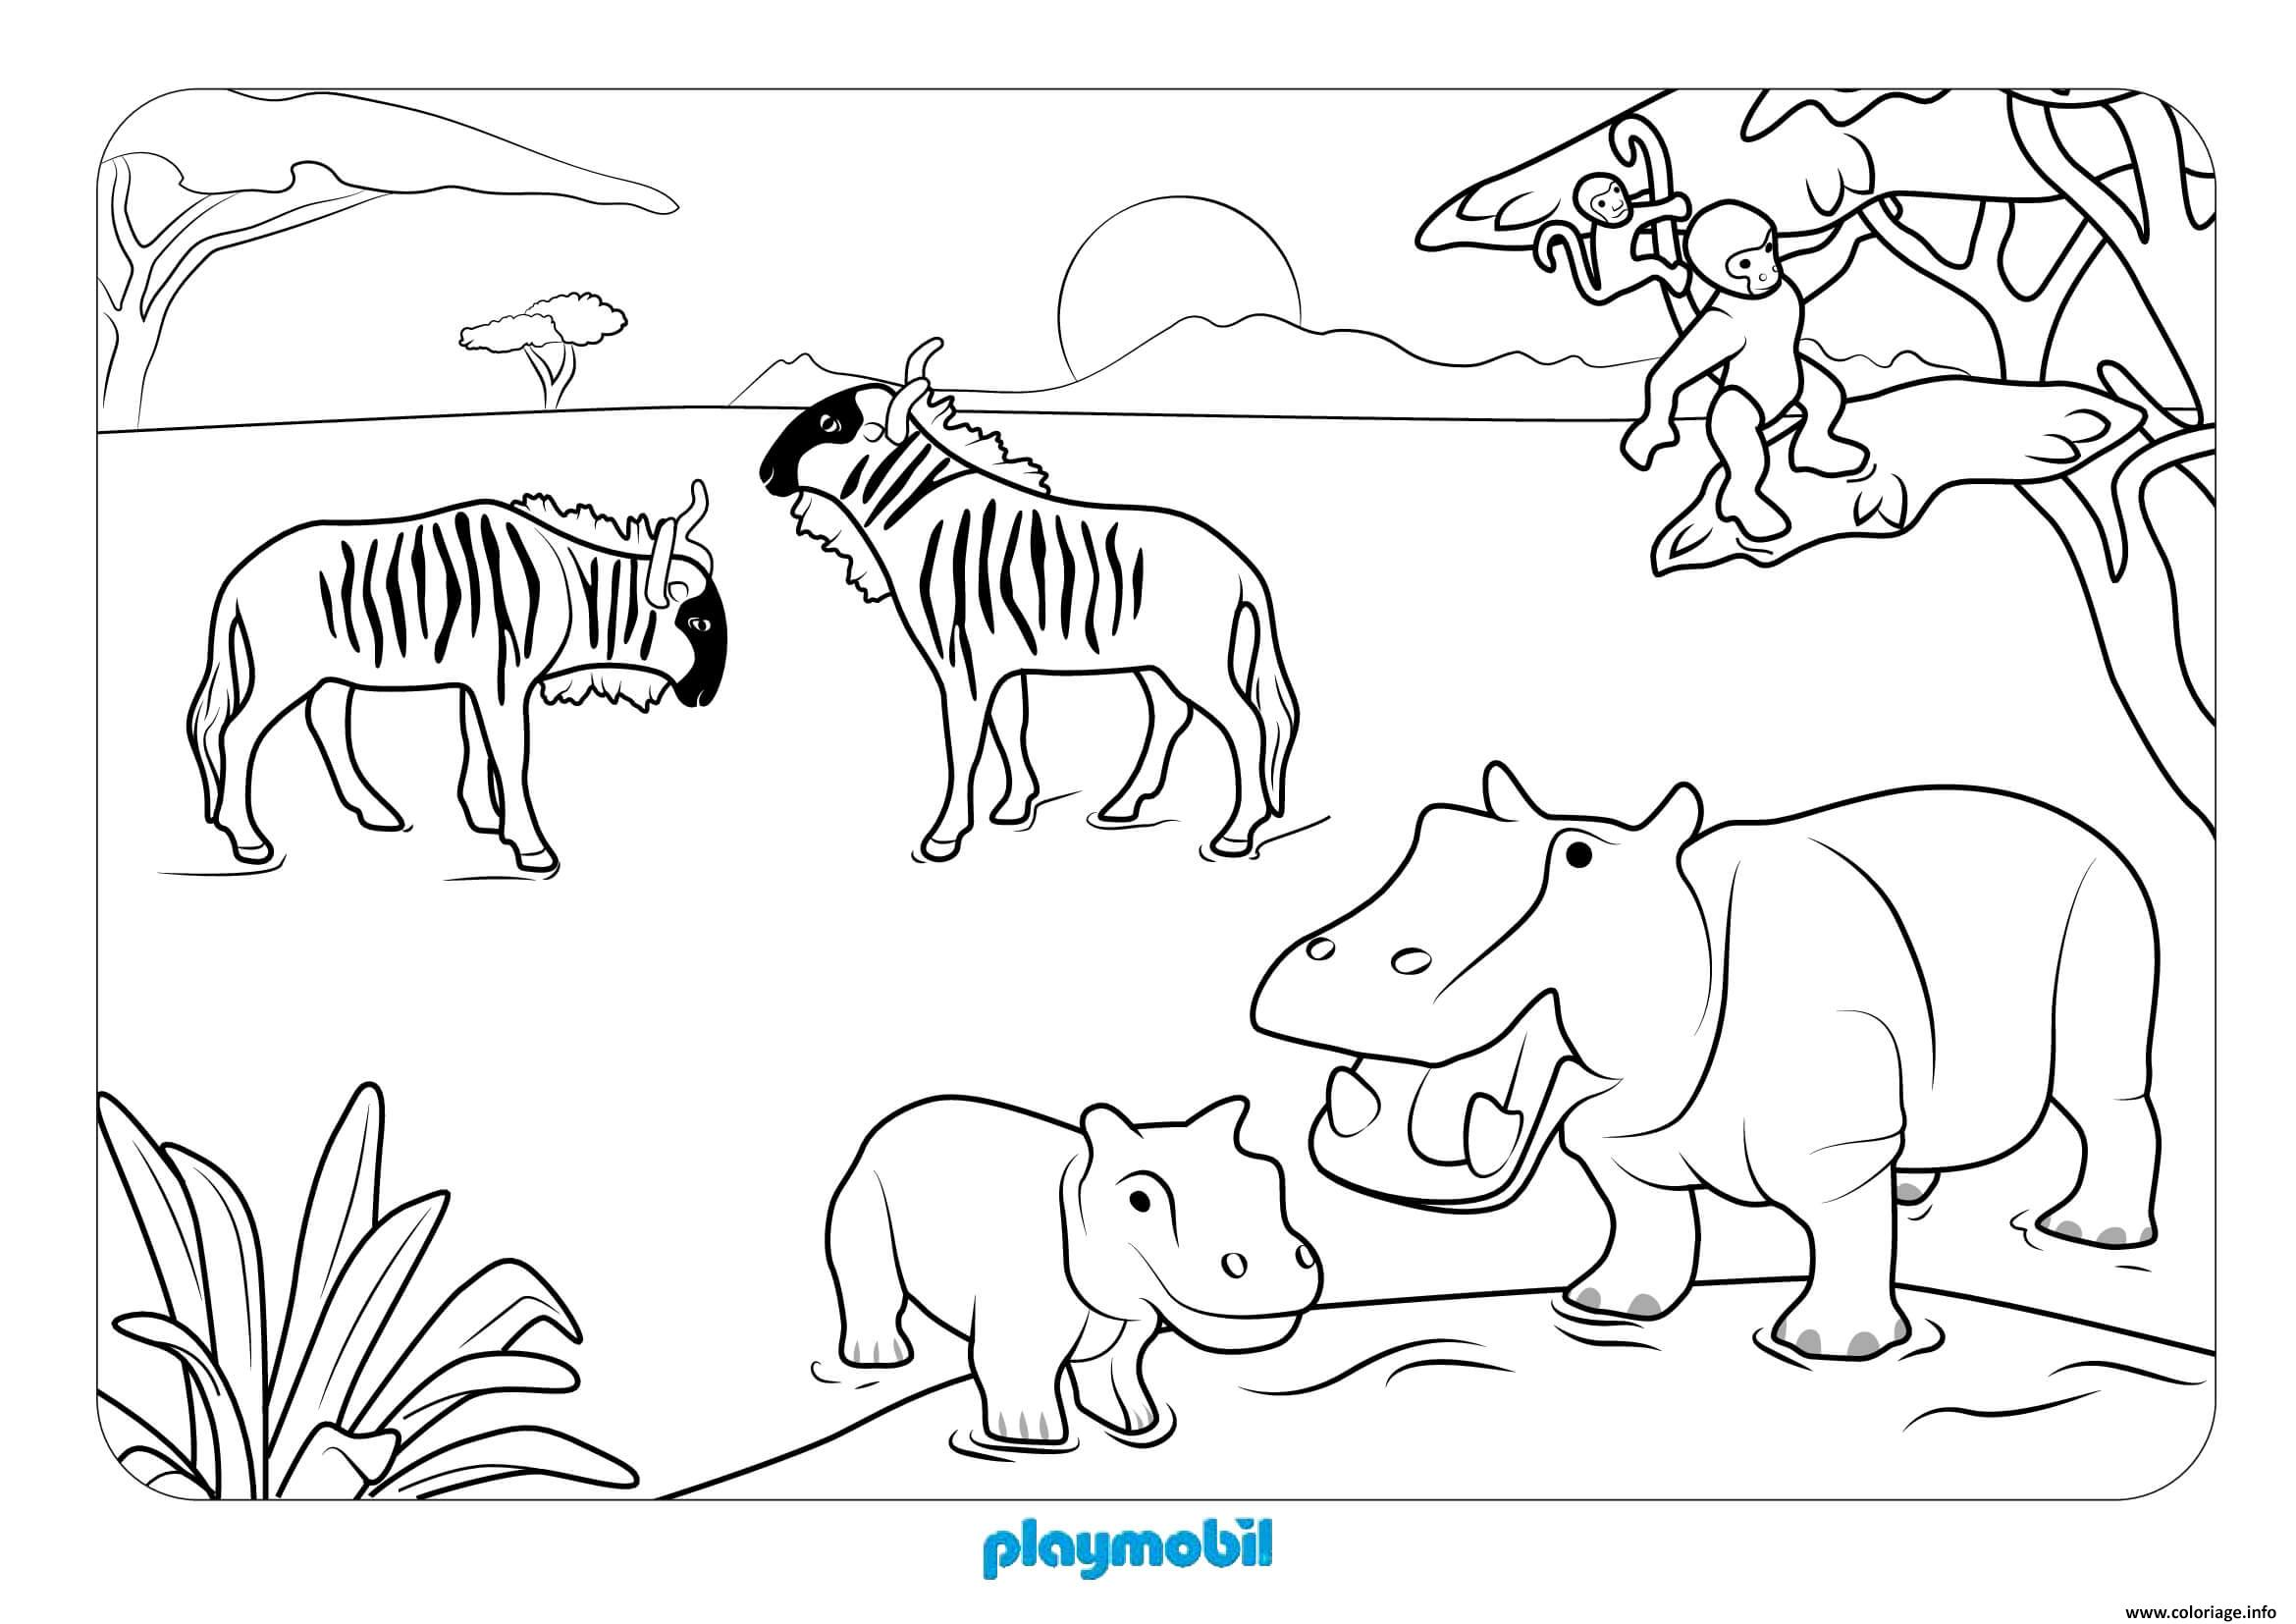 Coloriage Animaux Sauvages 2 Jecolorie Com